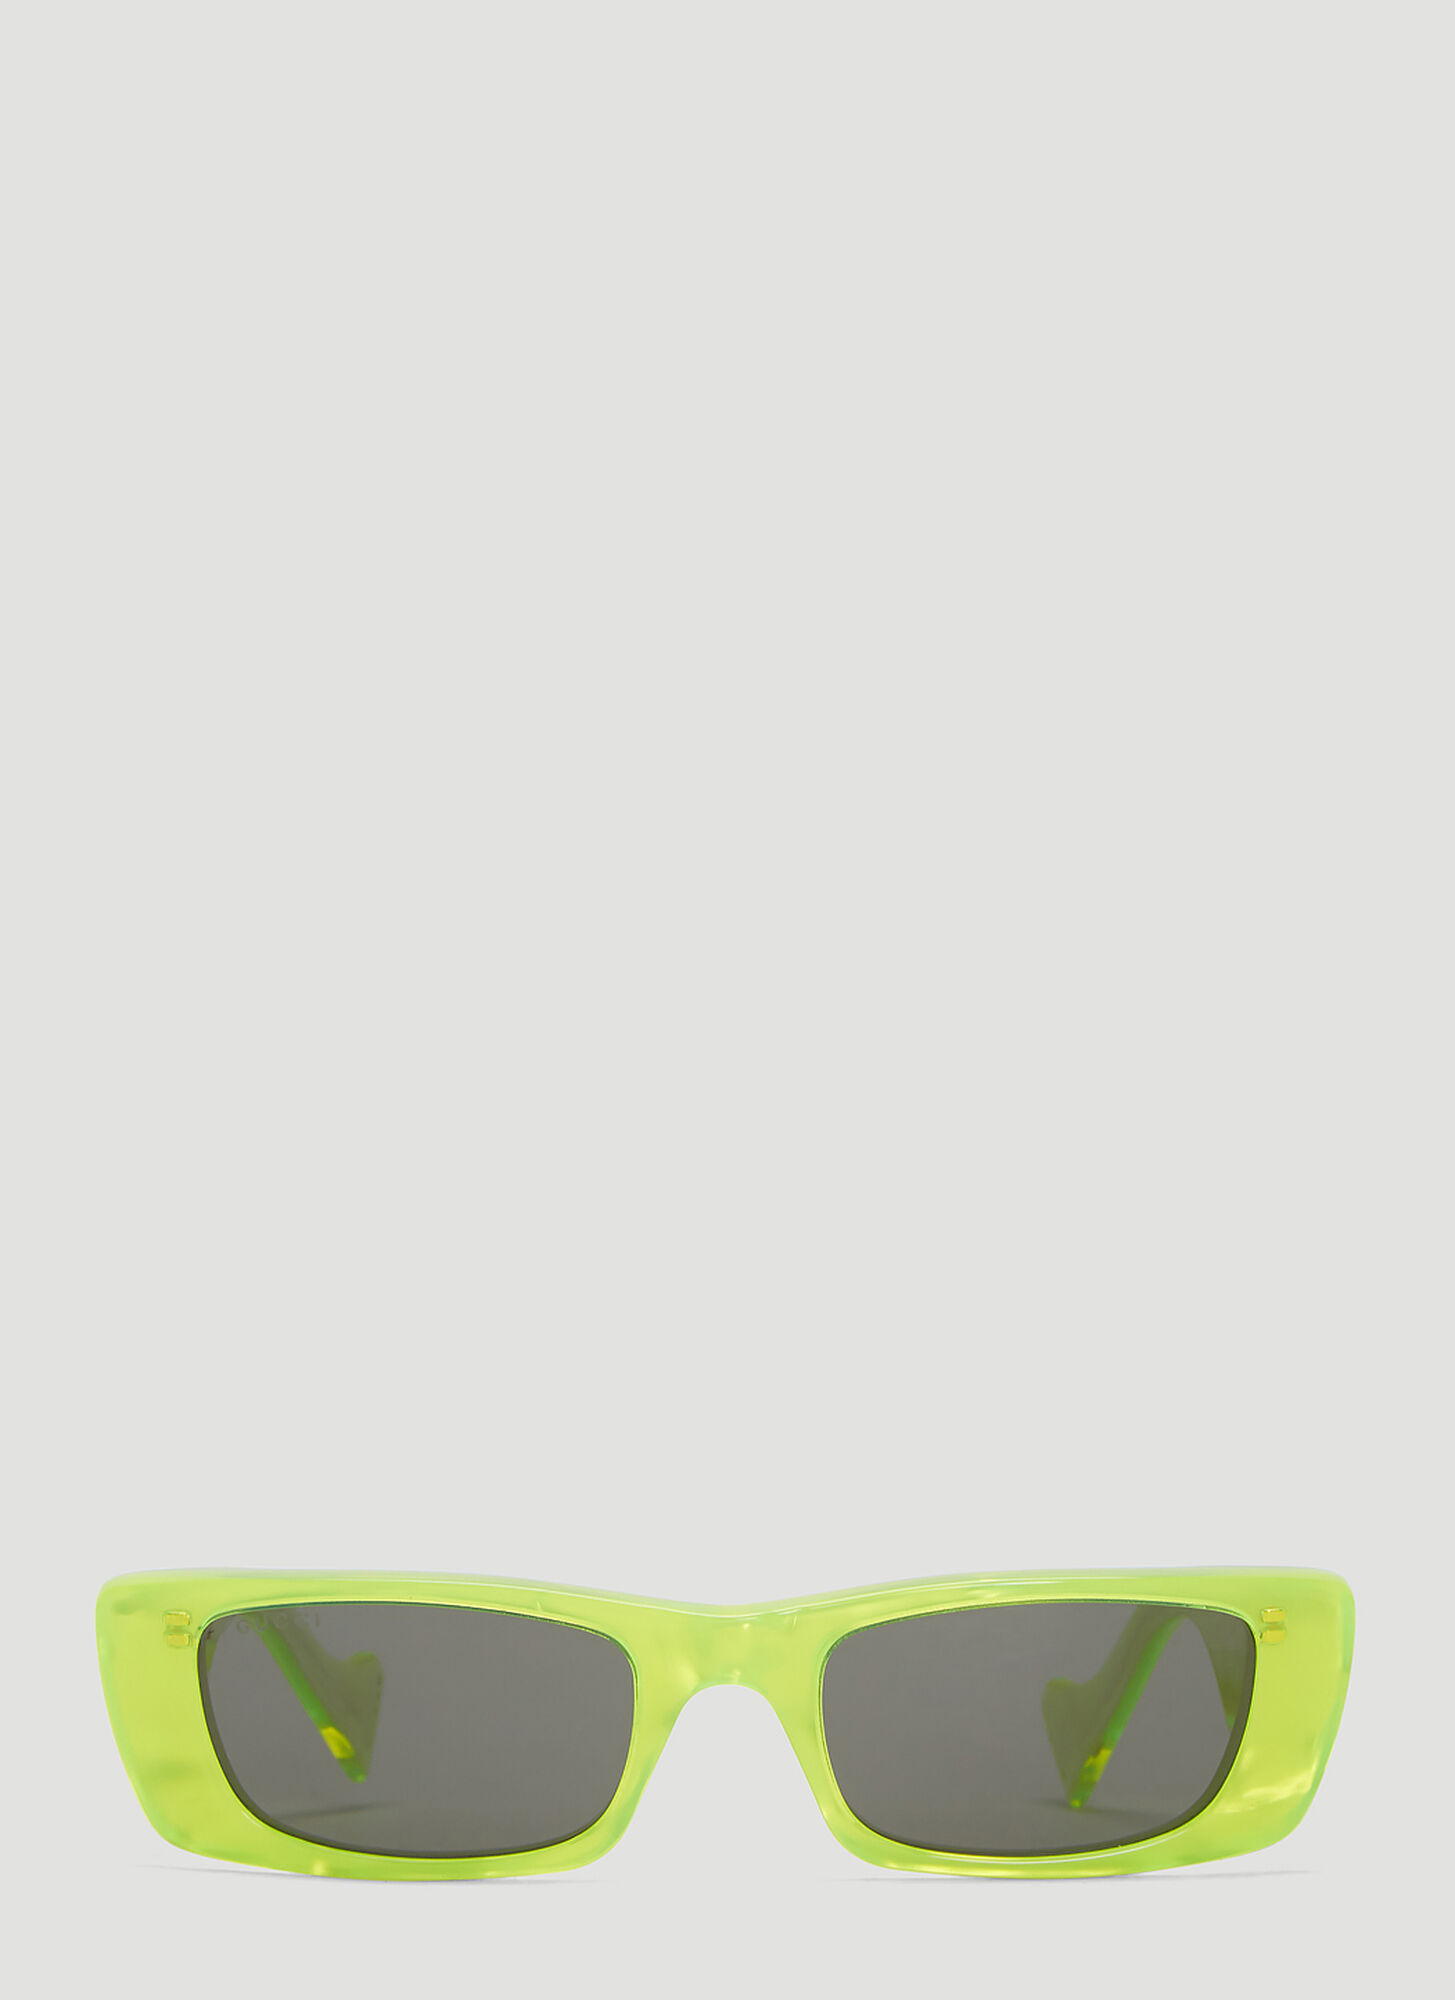 Gucci Rectangular Sunglasses in Yellow